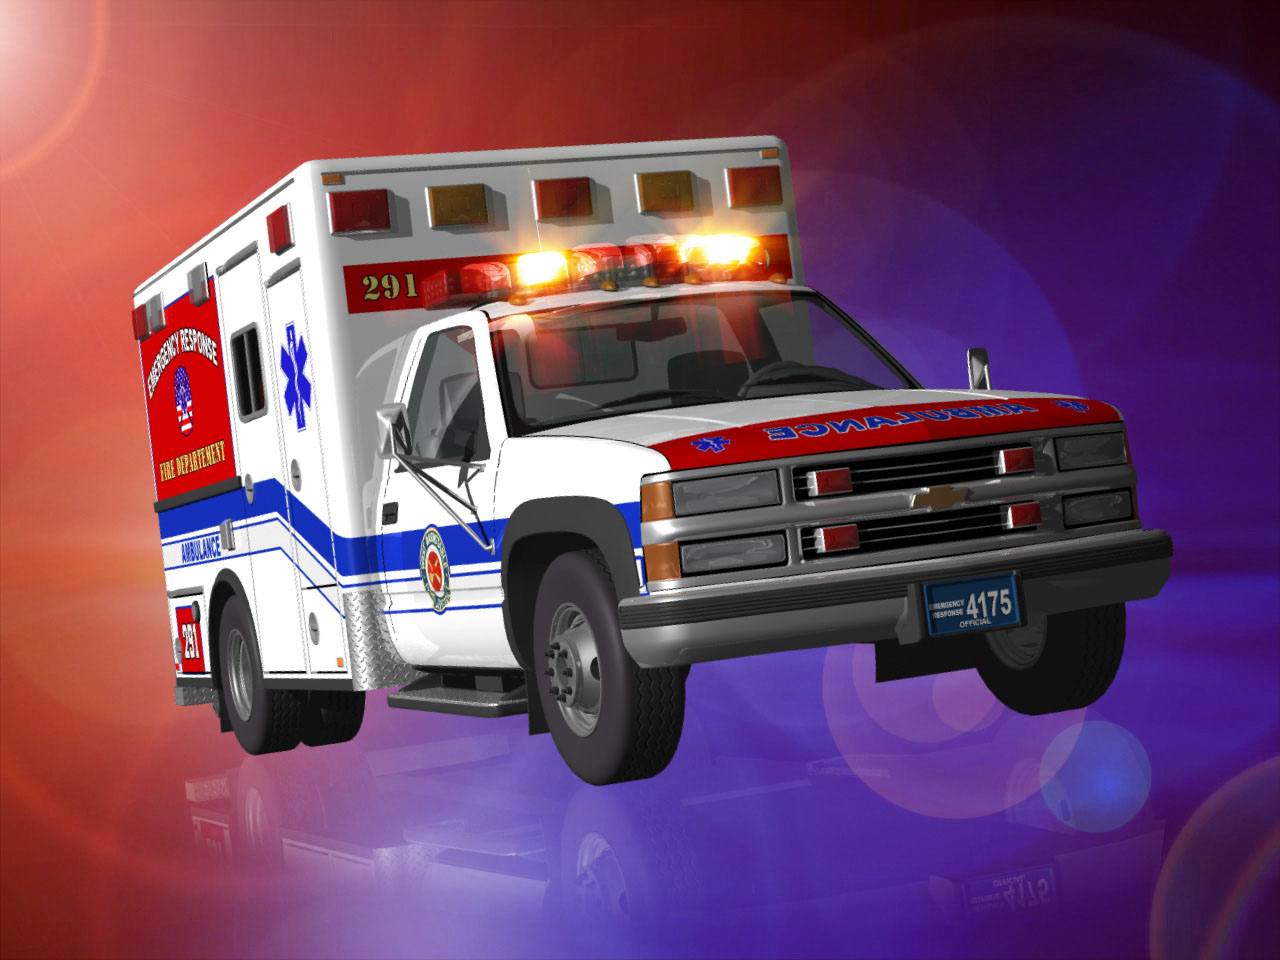 Two Seriously Injured in Motorcycle Accident